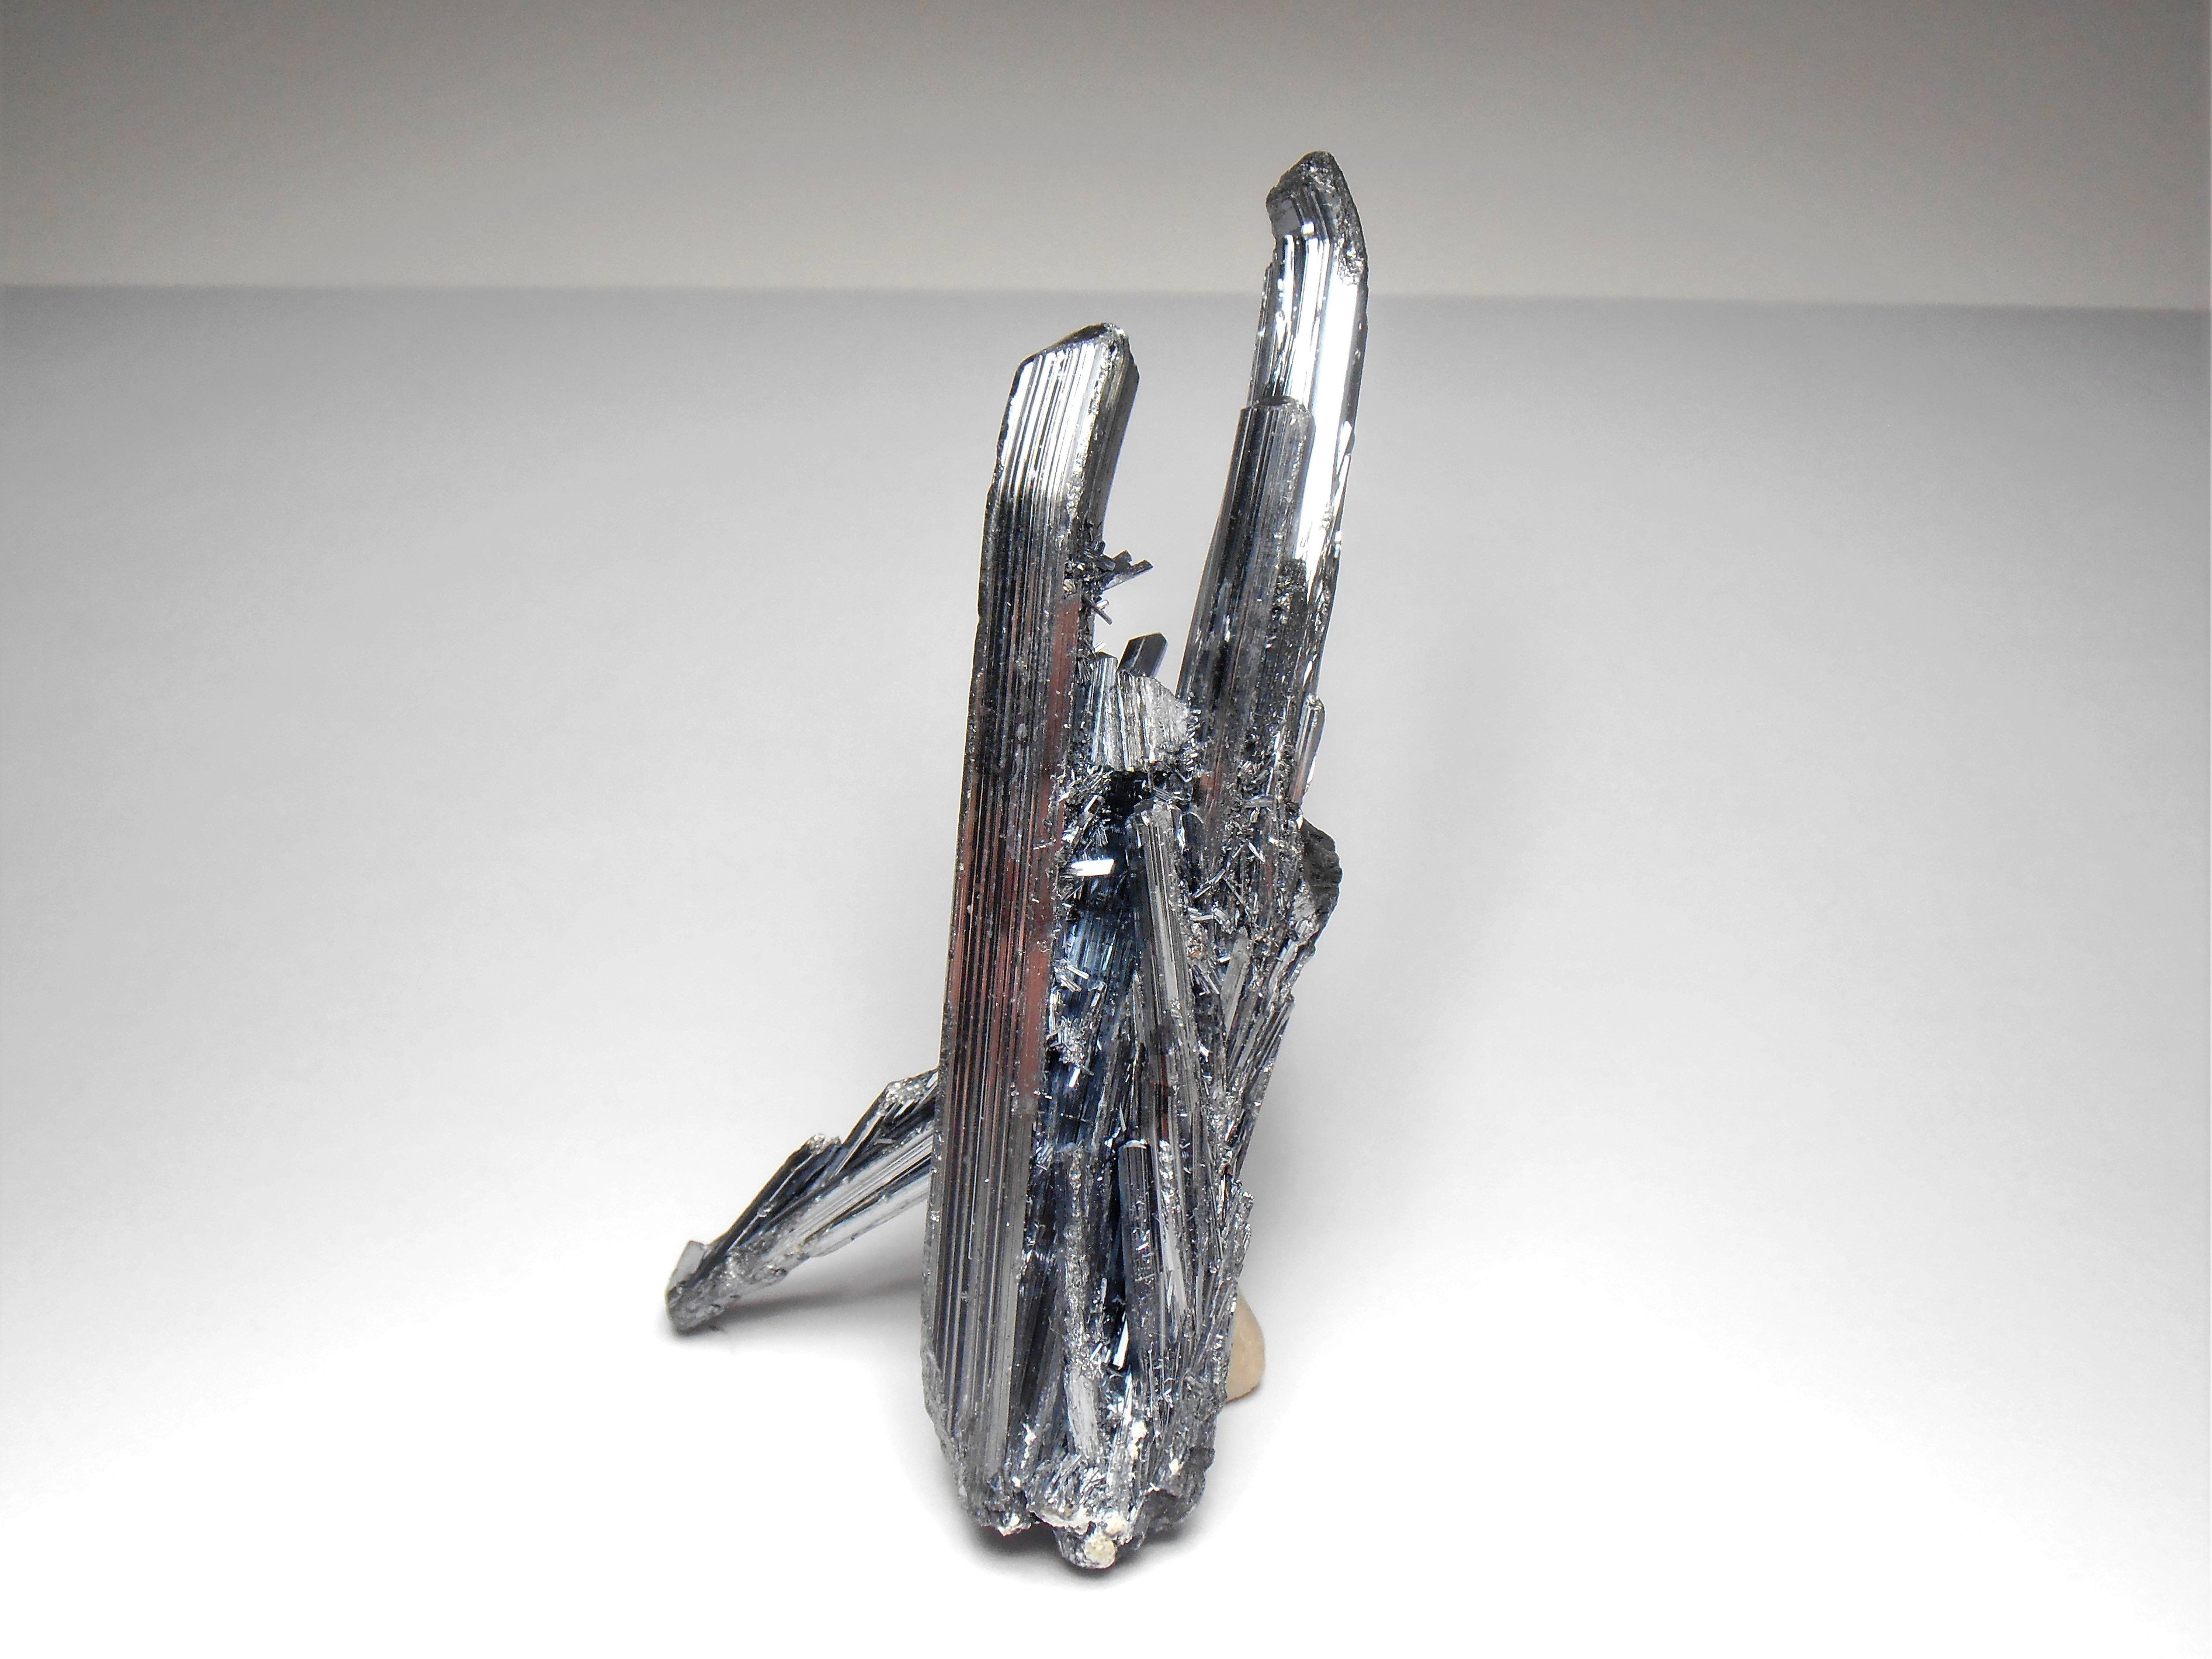 Stibnite Crystals from the Hunan Province